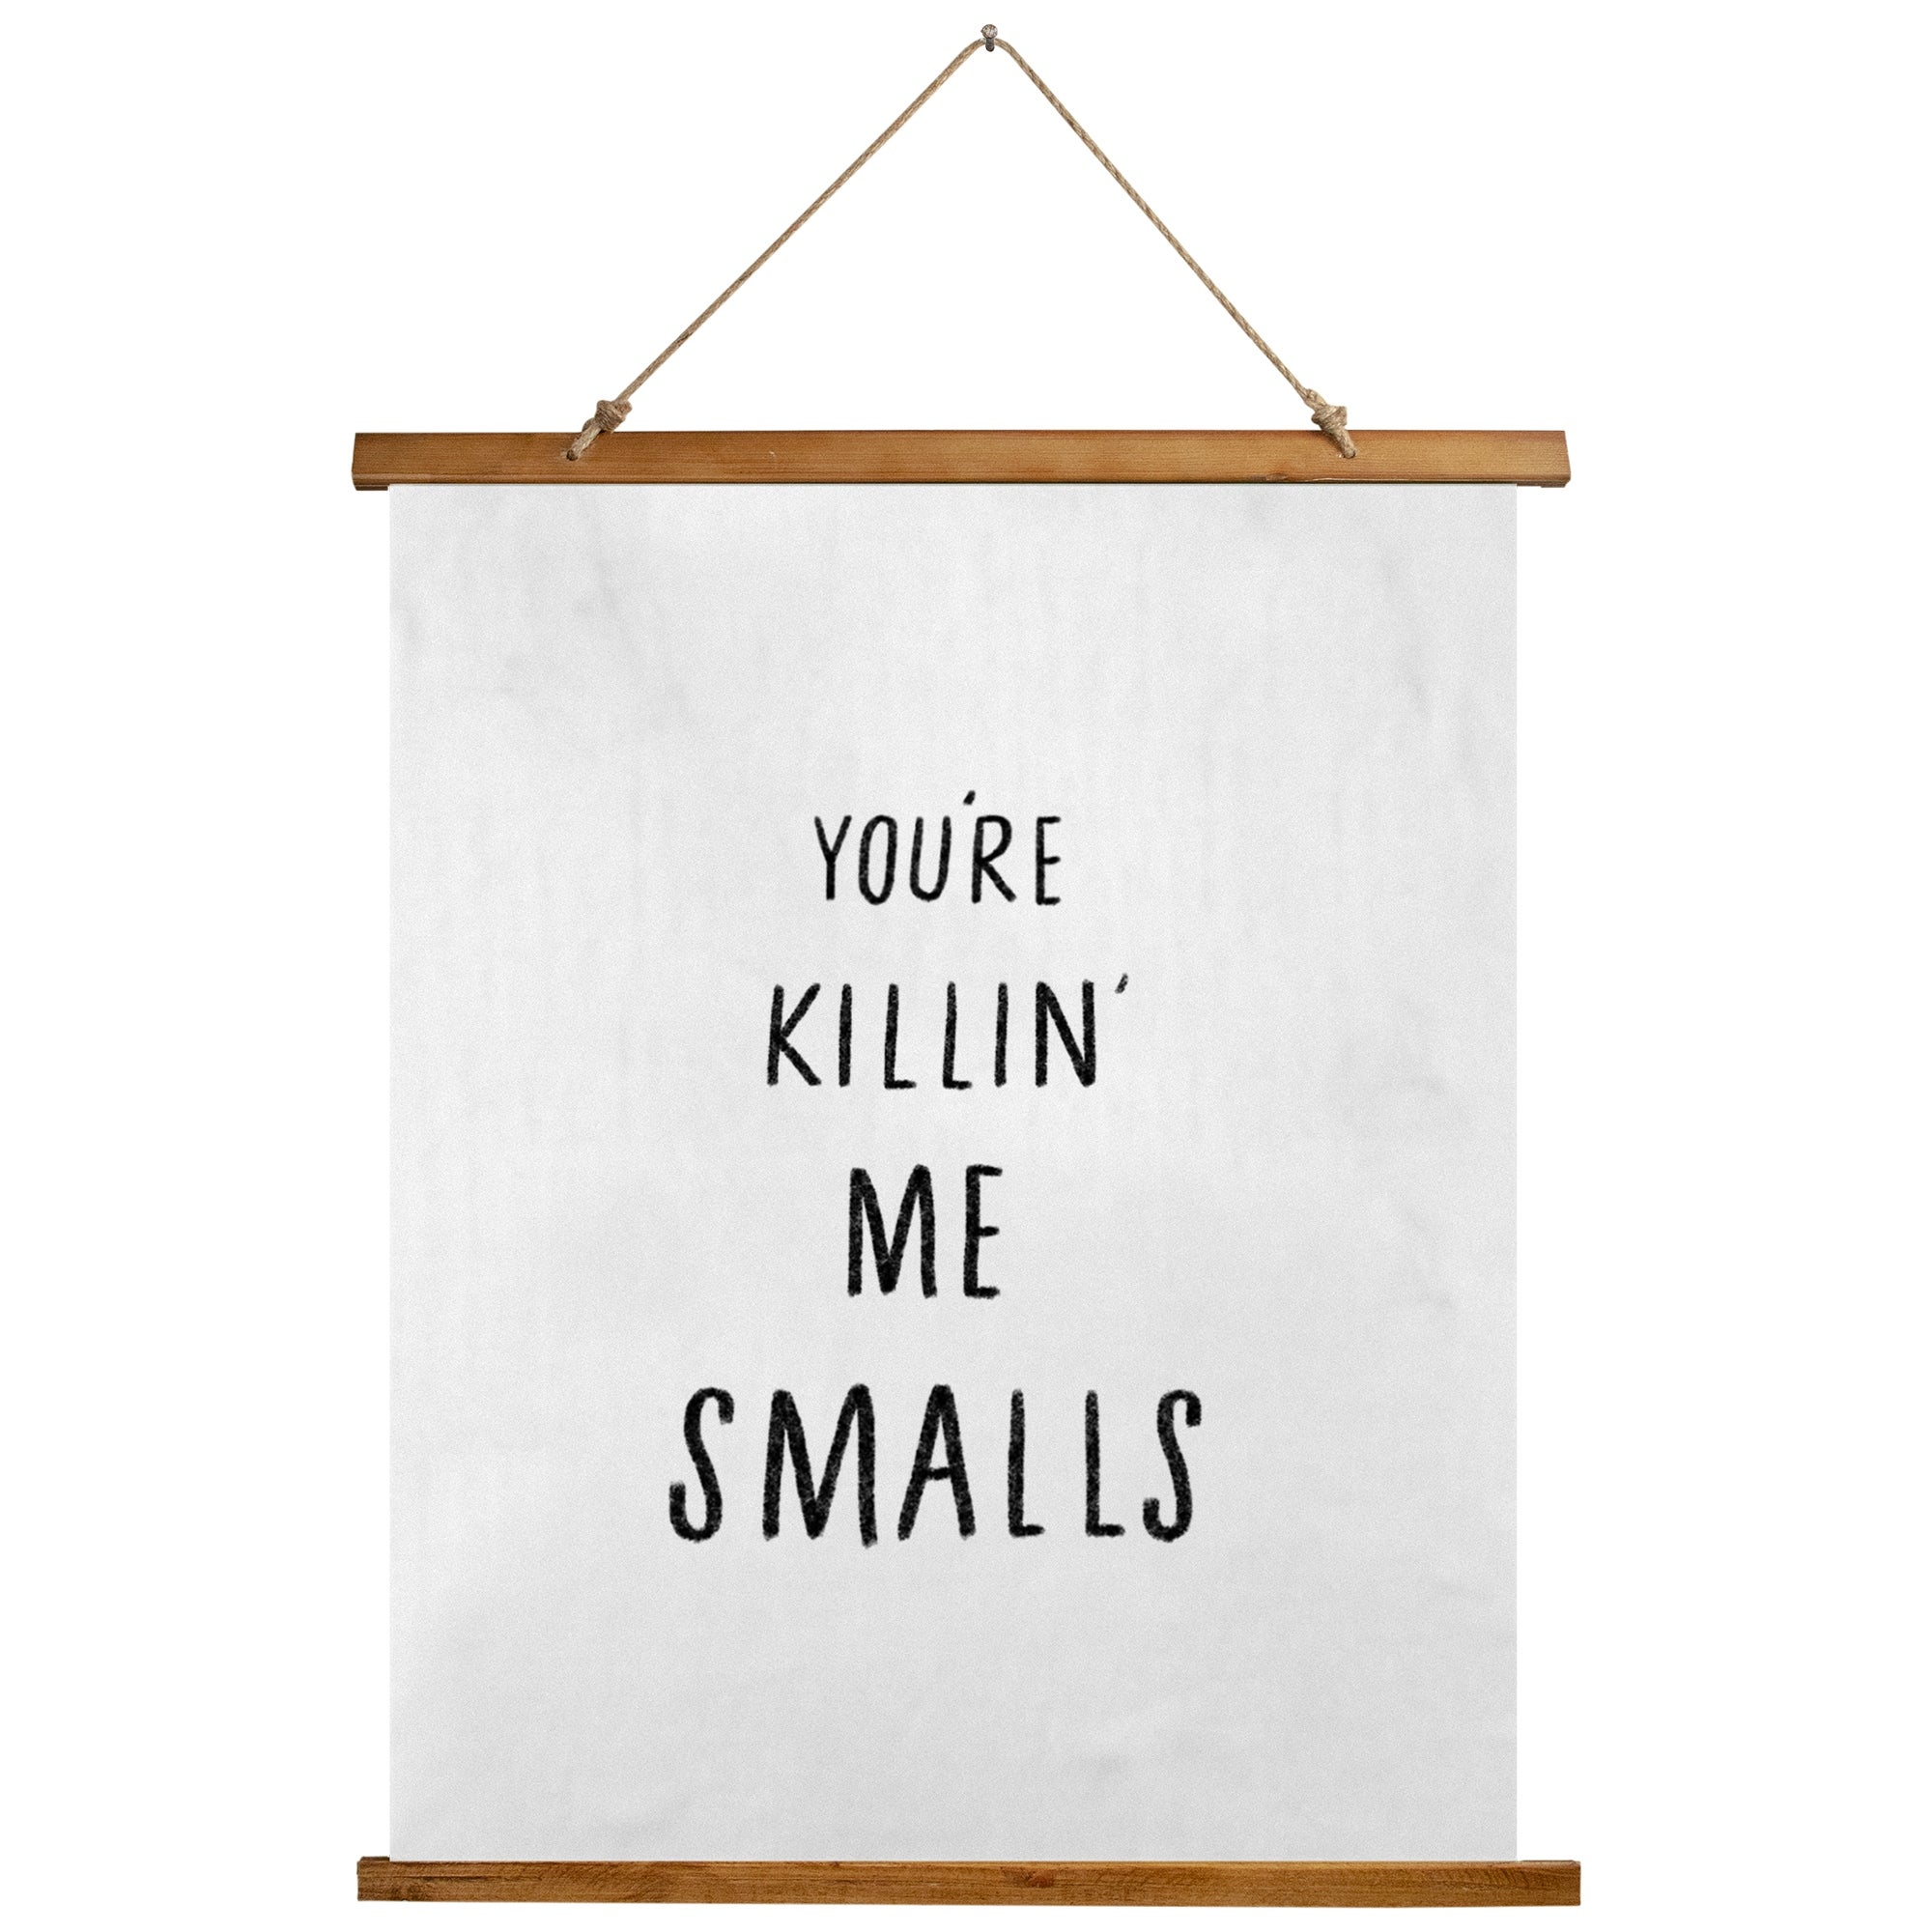 You Re Killin Me Smalls Scroll Tapestry By Kavka Designs 26x36 On Sale Overstock 31288458